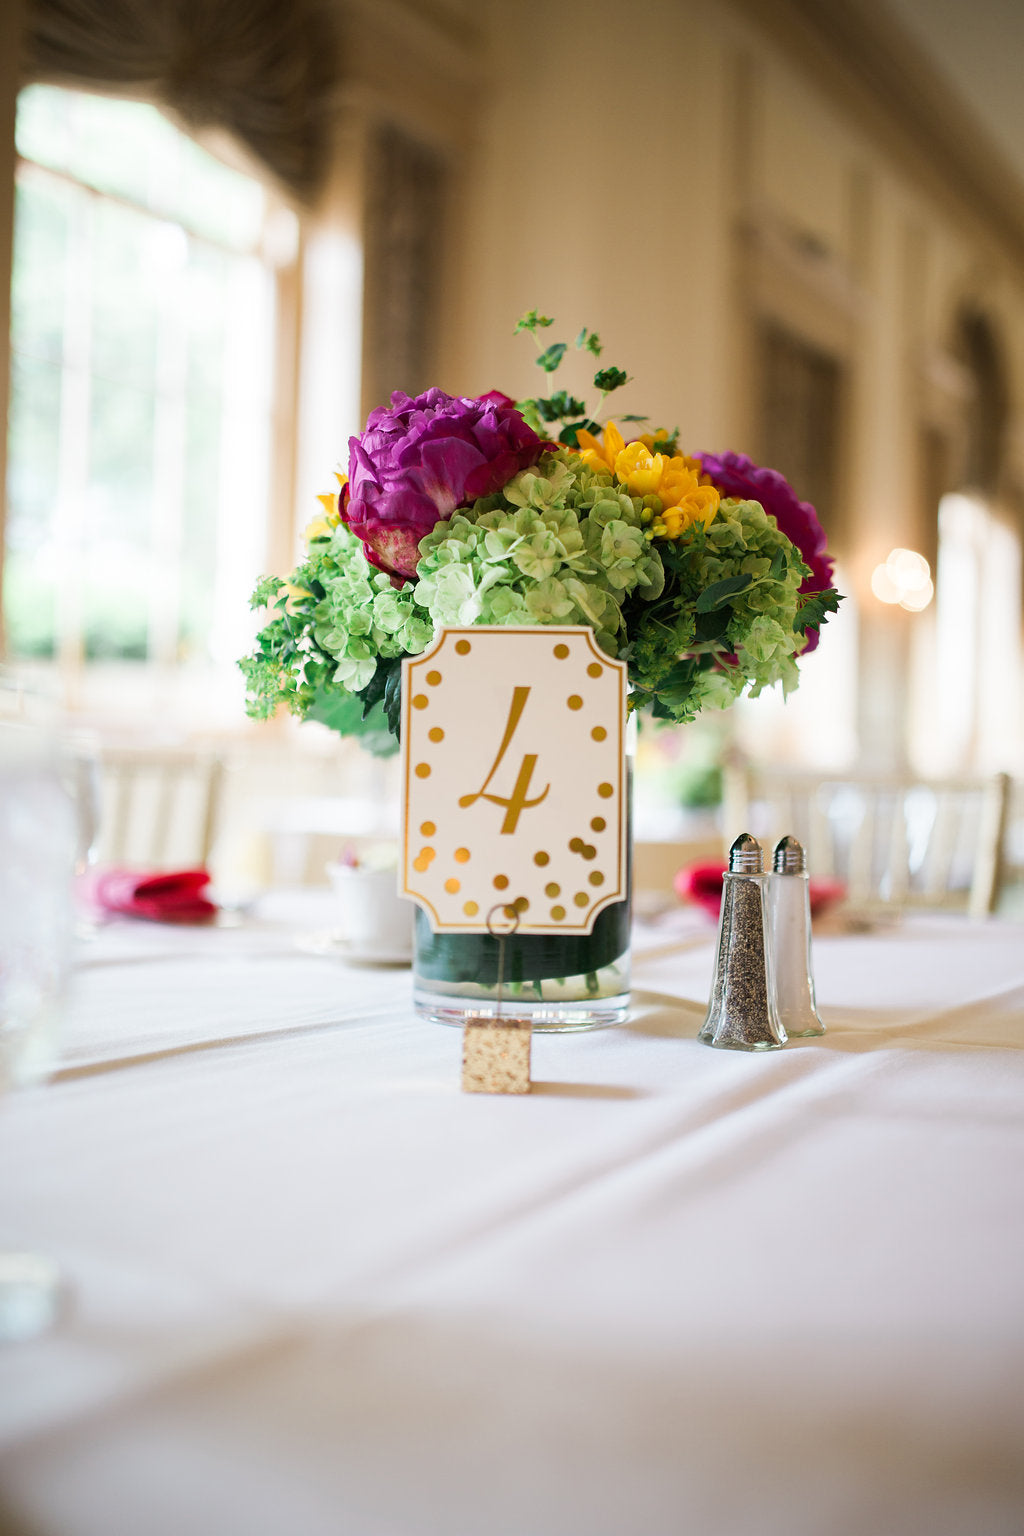 Bright Purple & Green Wedding Centerpiece with Peonies and Hydrangea